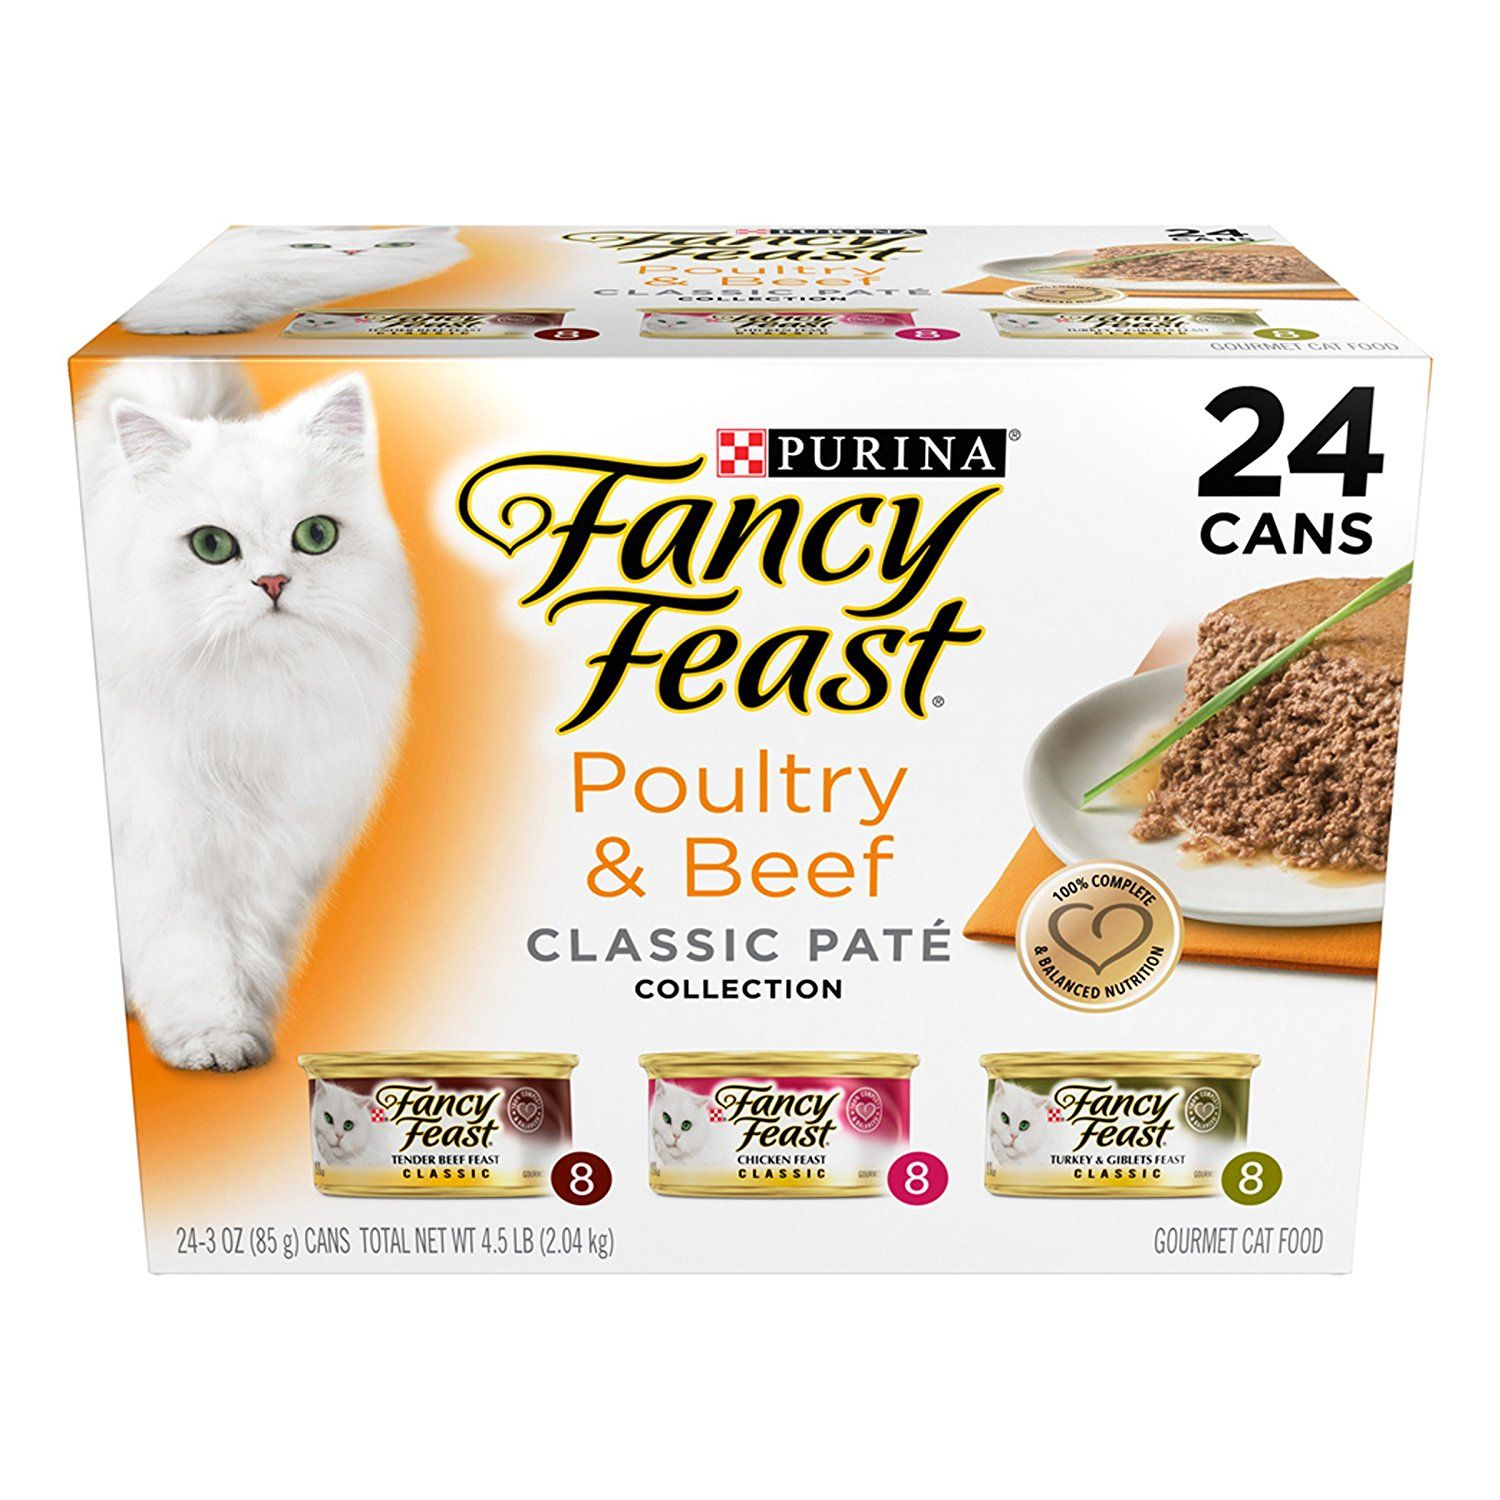 Purina Fancy Feast Classic Gourmet Wet Cat Food 24 3 Oz Cans Wow I Love This Check It Out Now Fancy Feast Cat Food Cat Food Reviews Cat Food Coupons